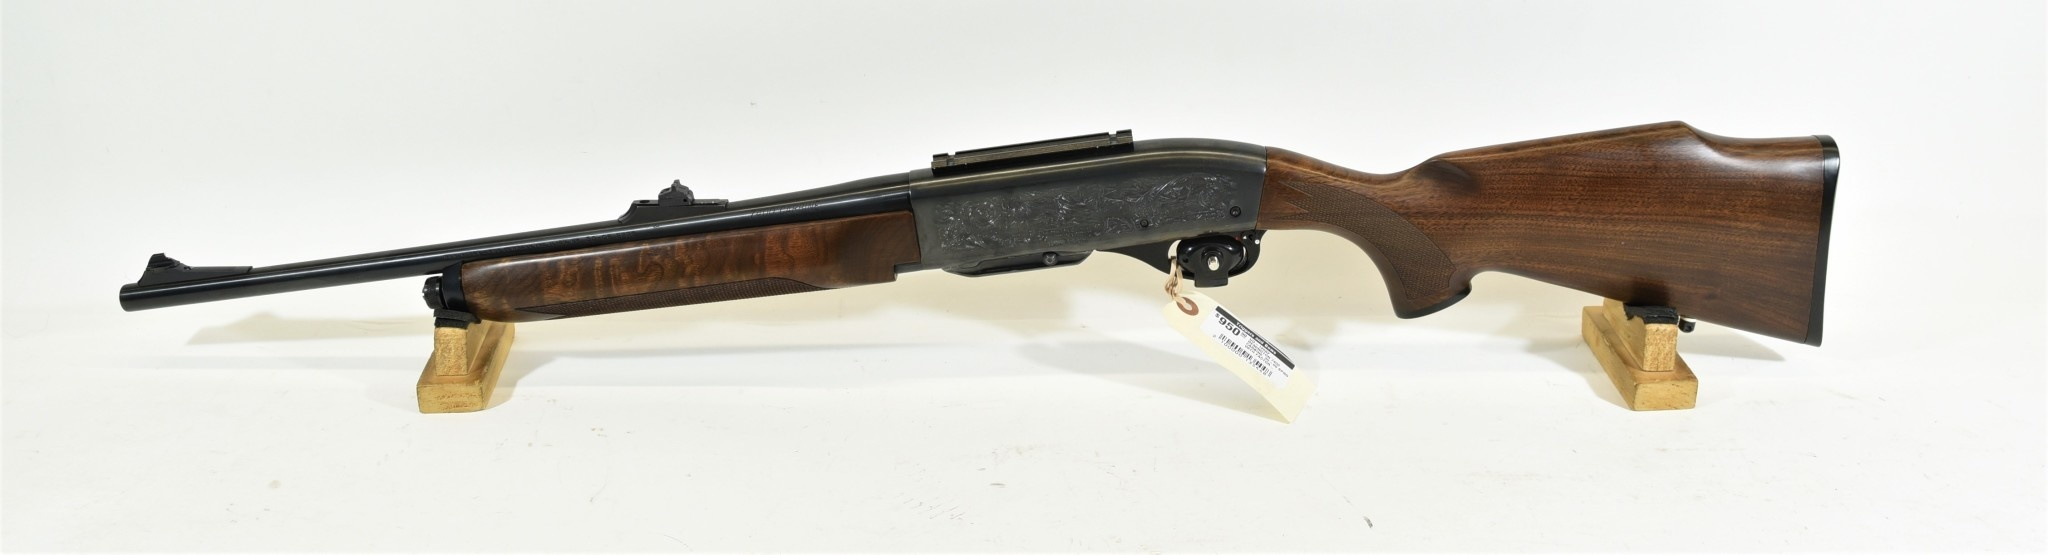 UG-12682 USED Remington 7400 Carbine  30-06 Sprg  w/ Factory Engraved  Receiver, Synthetic Stock and Forearm, Plus Original Wood Stock and Forearm